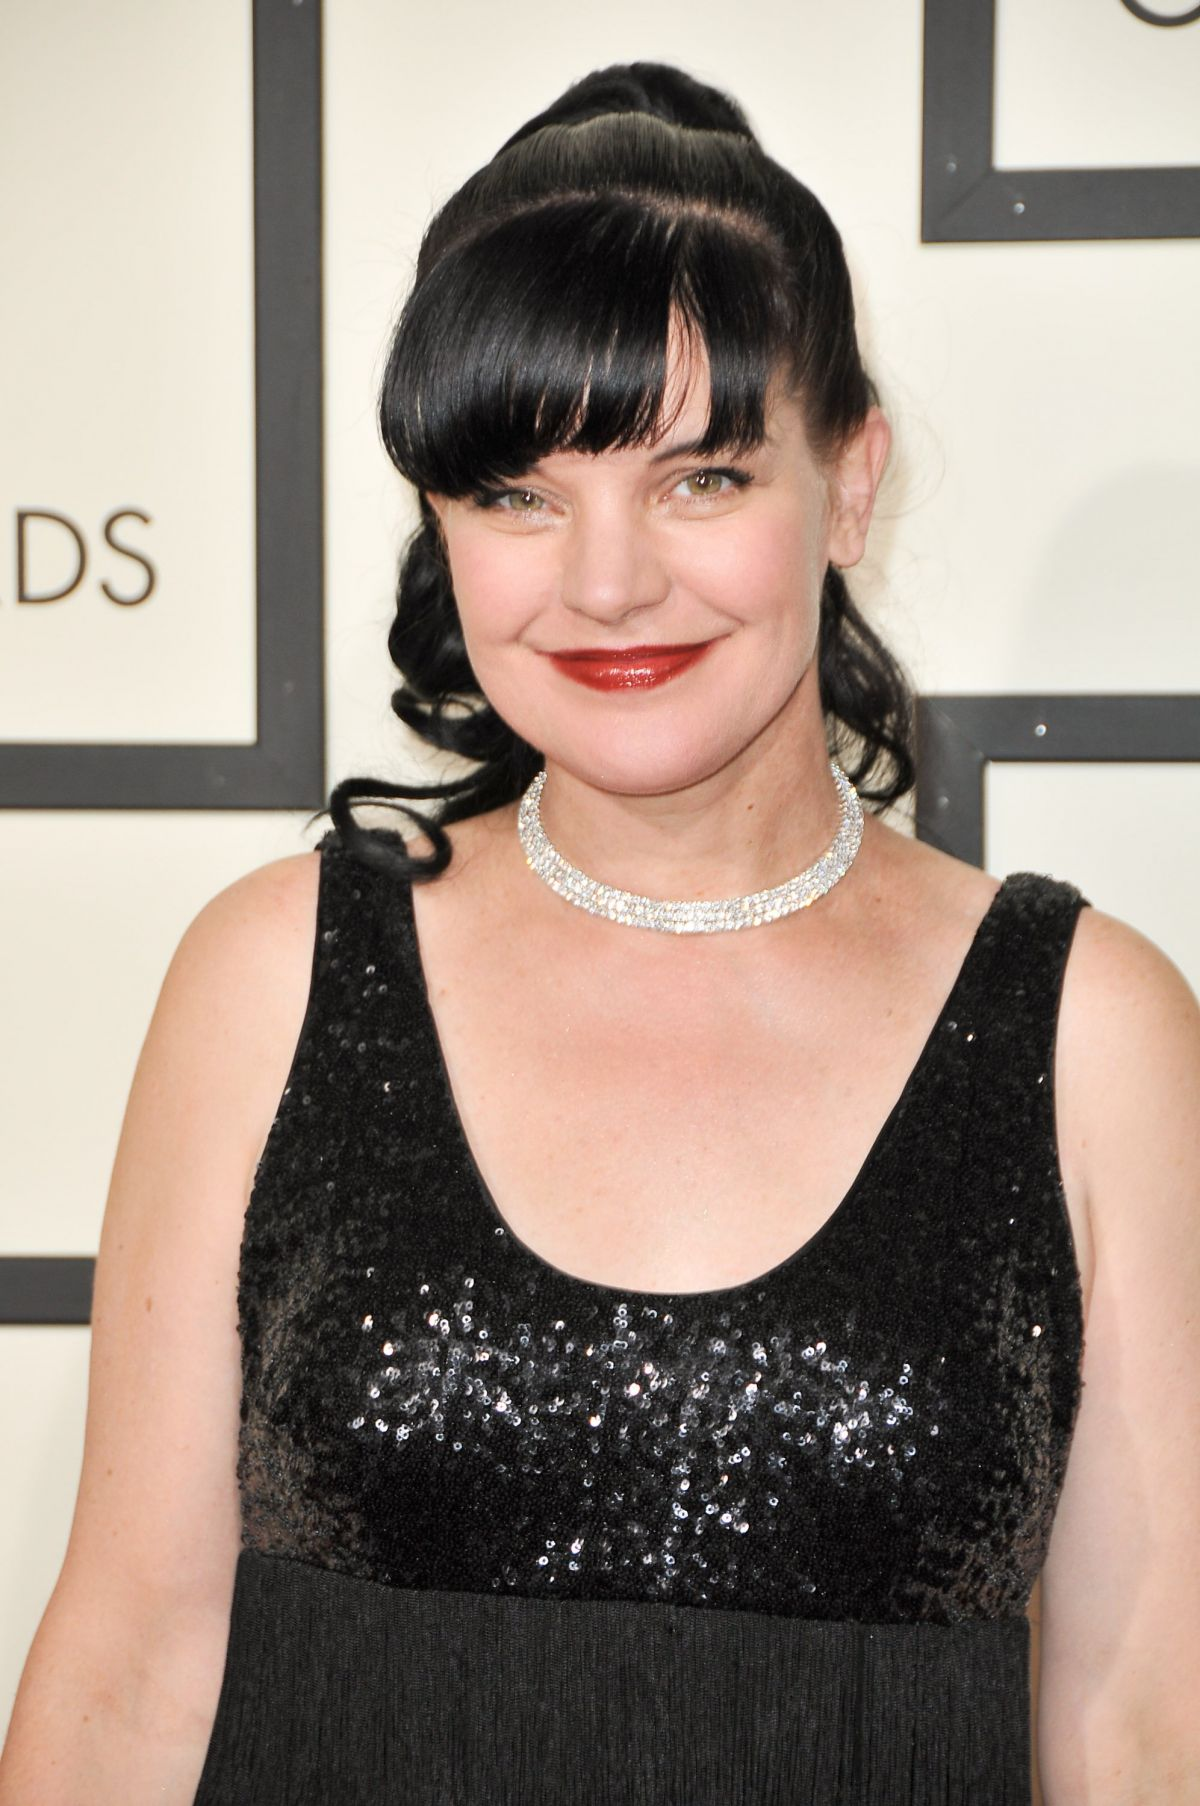 PAULEY PERRETTE at Grammy Awards 2016 in Los Angeles 02/15 ...